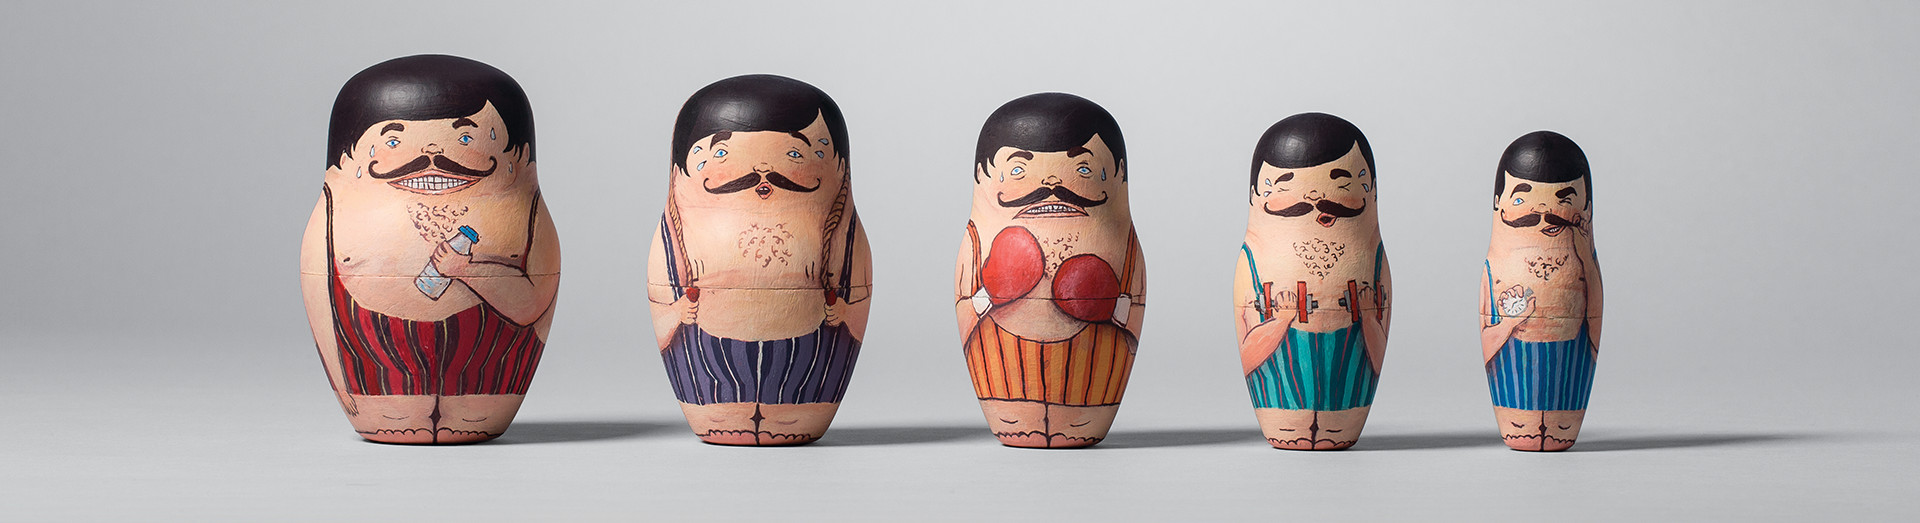 fit nesting doll hero 1920x523